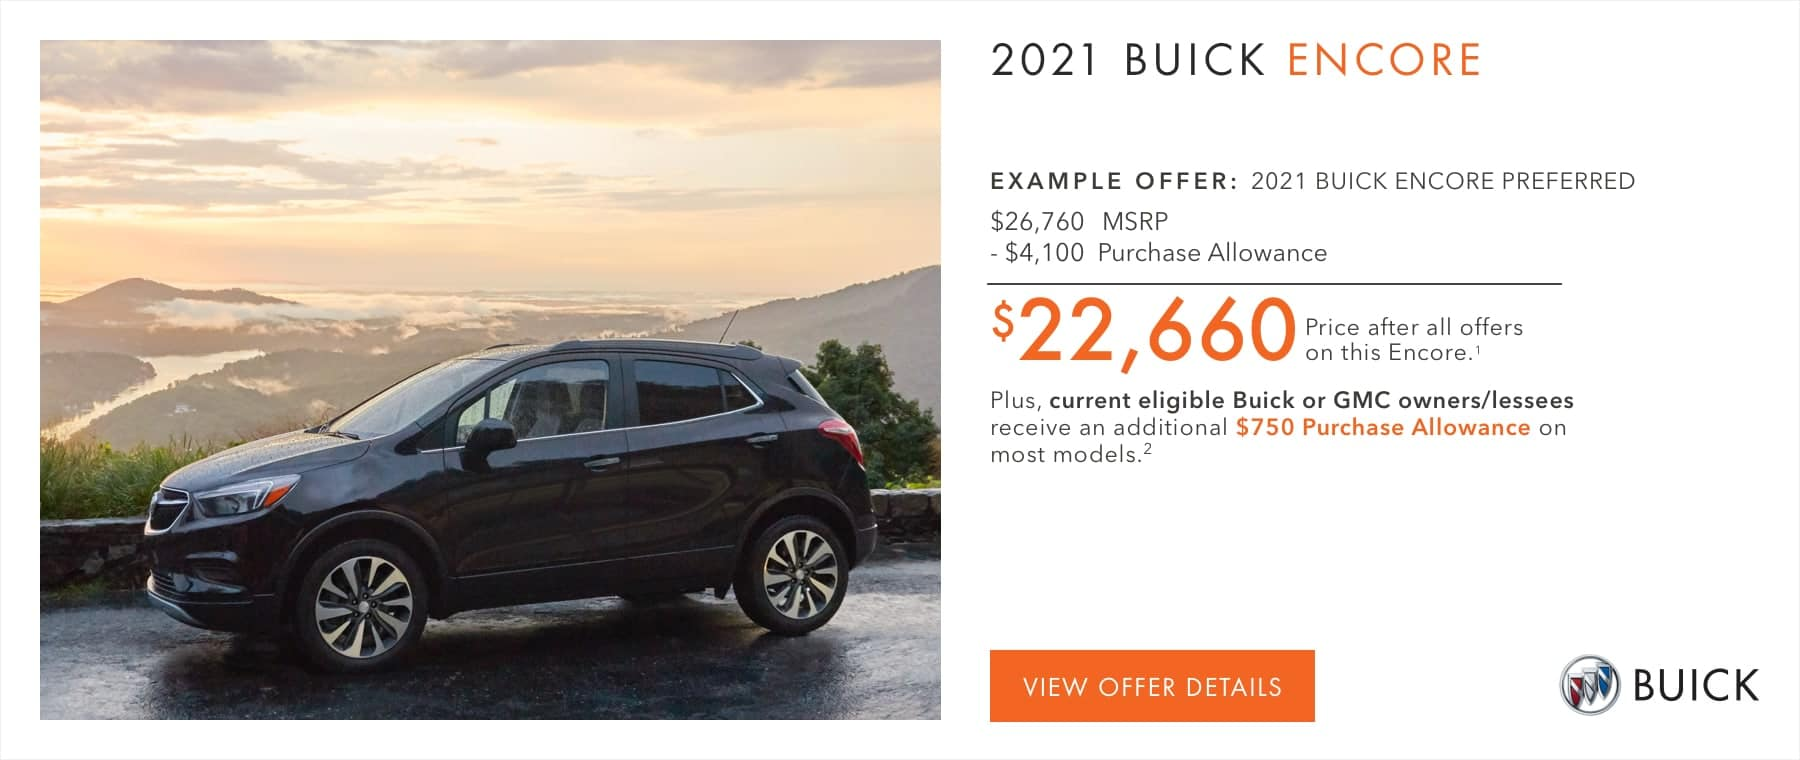 $22,660 Price after all offers on this Encore.1 Plus, current eligible Buick or GMC owners/lessees receive an additional $750 Purchase Allowance on most models.2